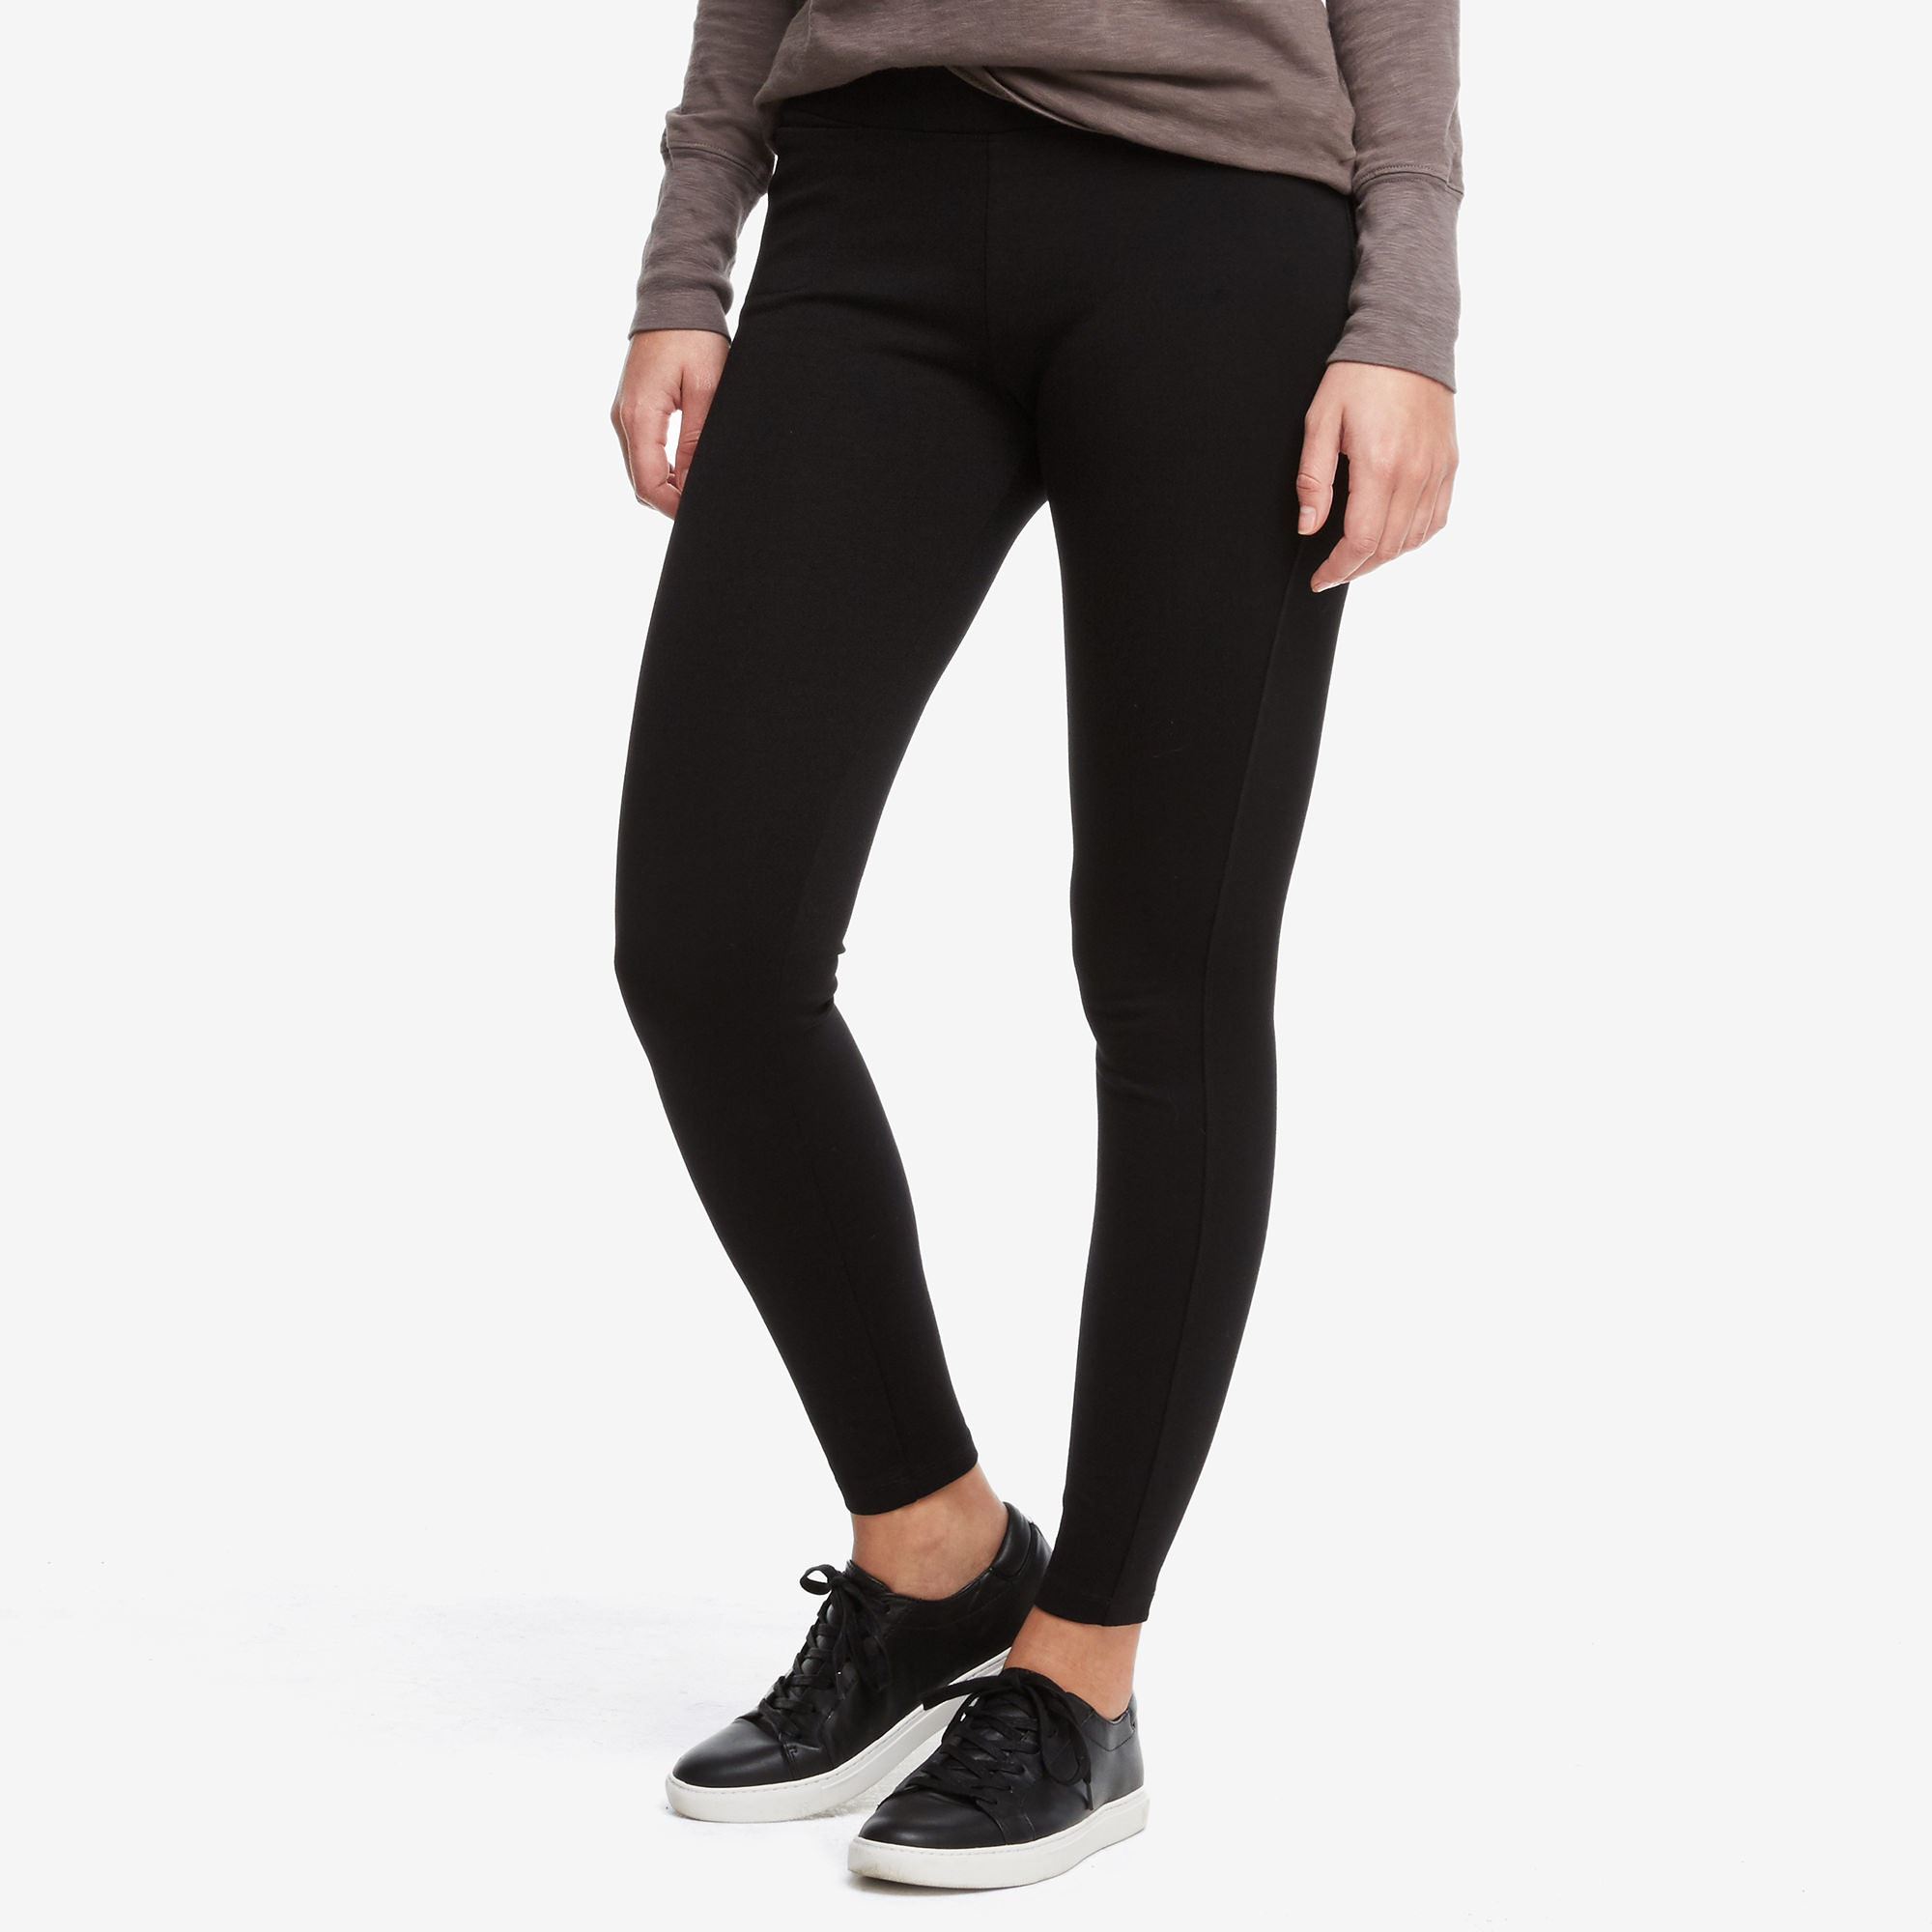 American Giant sweatpants: A step up from yoga pants, a little more stylish than sweats